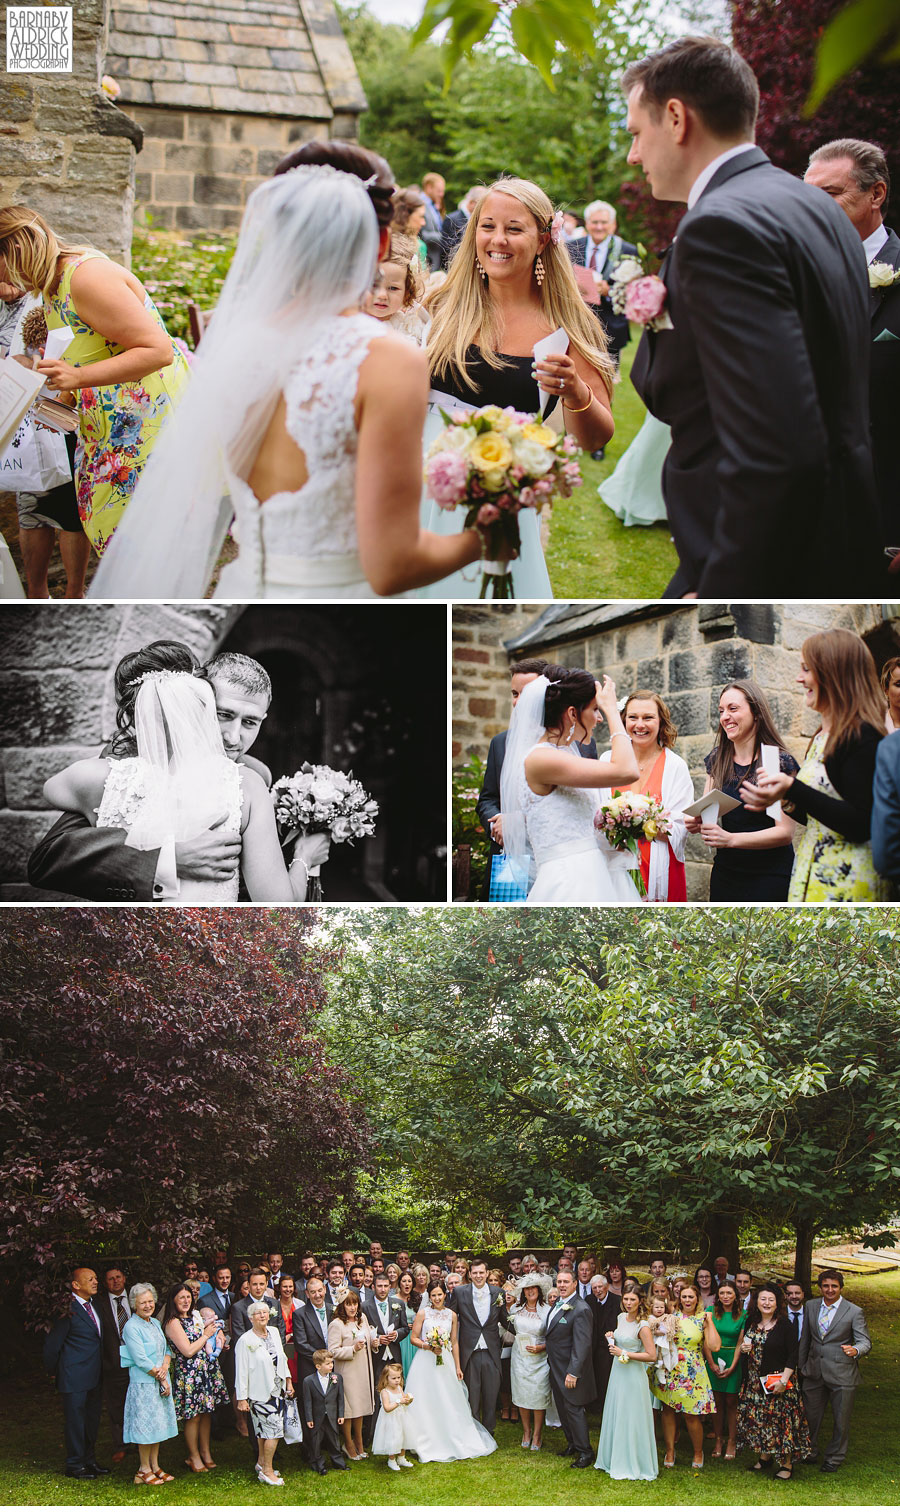 Wood Hall Linton Wetherby Wedding Photography 028